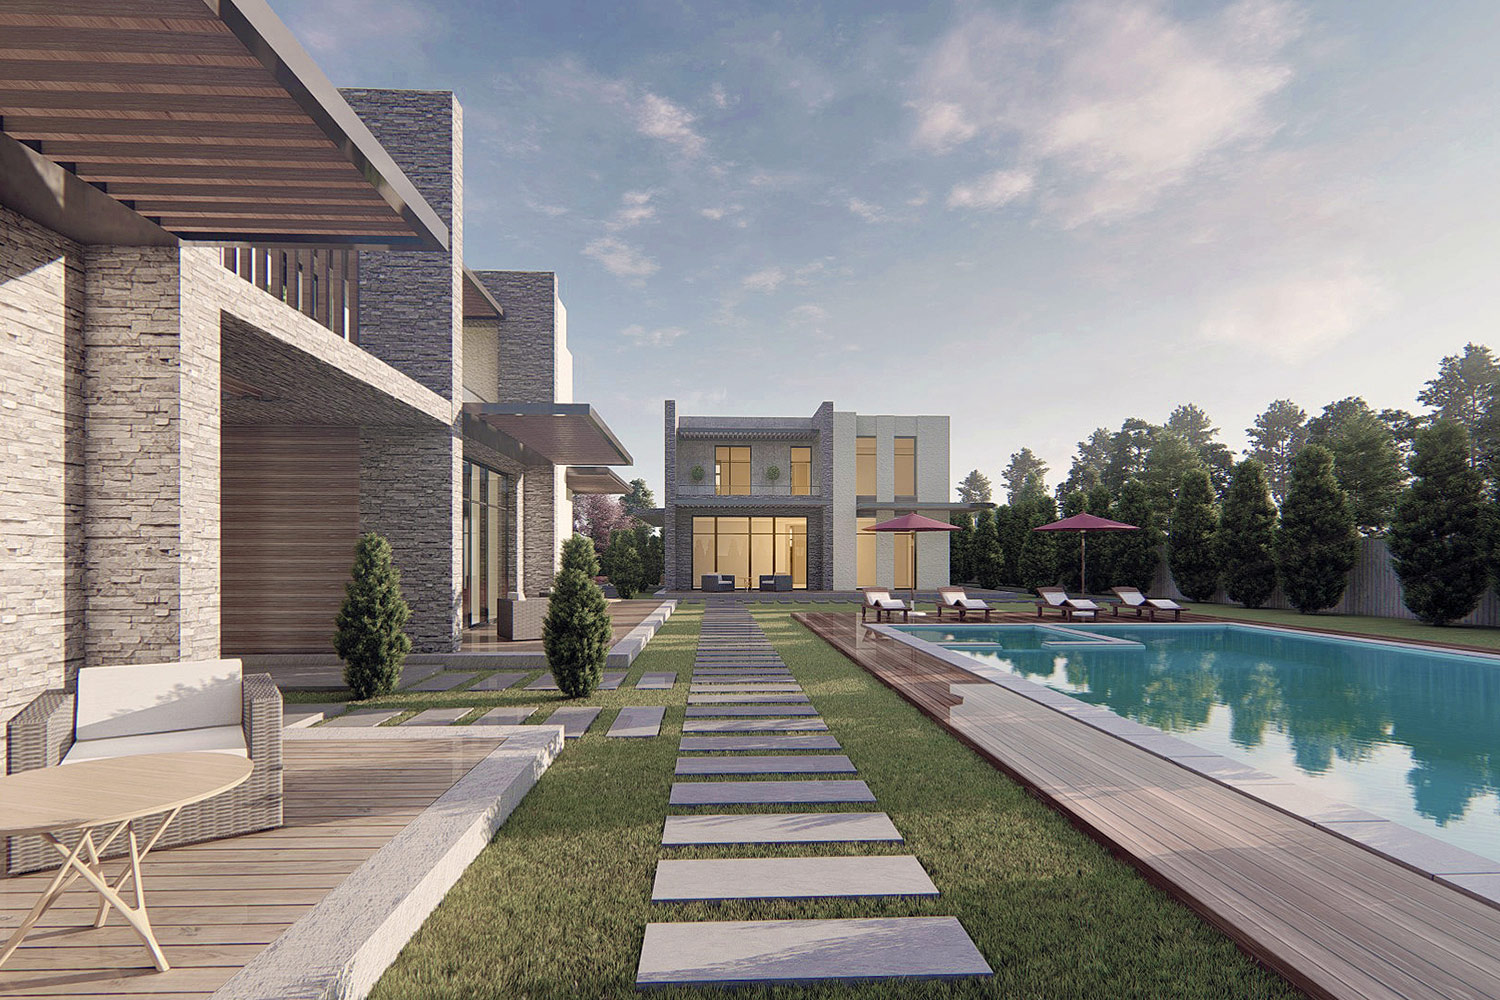 Seymen Twin Villas Project